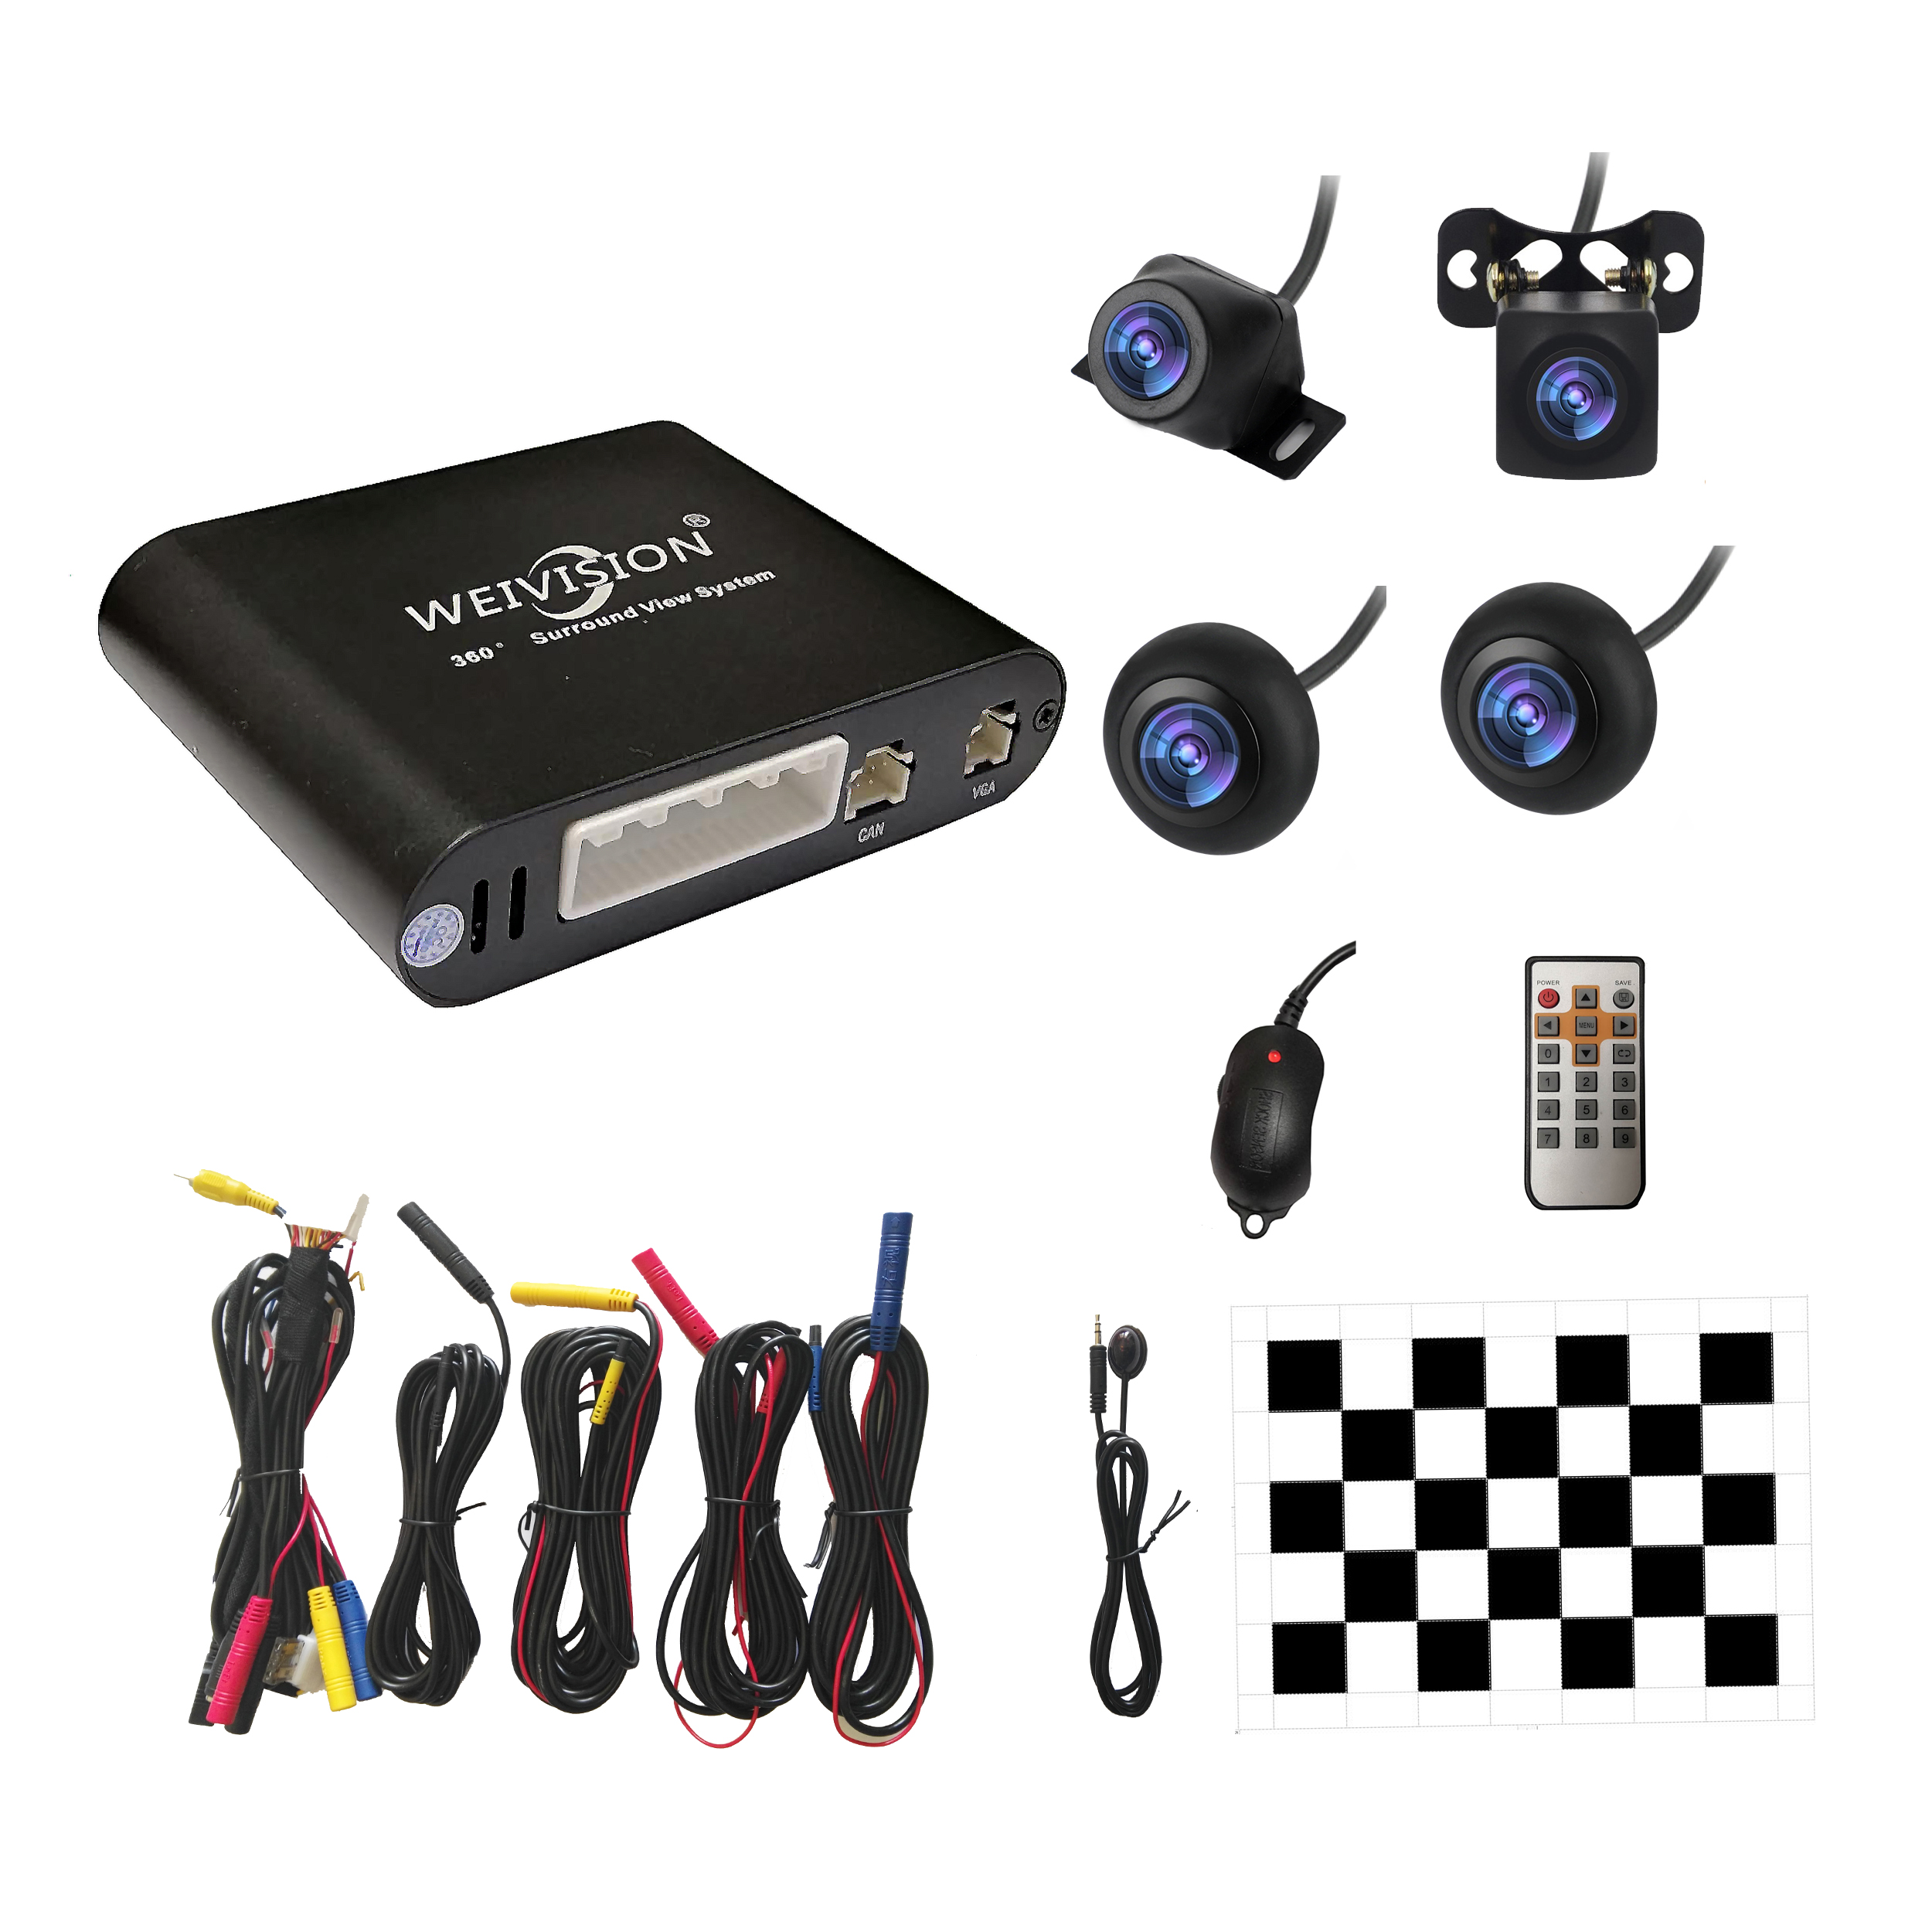 WEIVISION 360 graden naadloze Bird View Panorama-systeem, All Round View-systeem, rond Parking Car DVR opname, cadeau 8G U disk